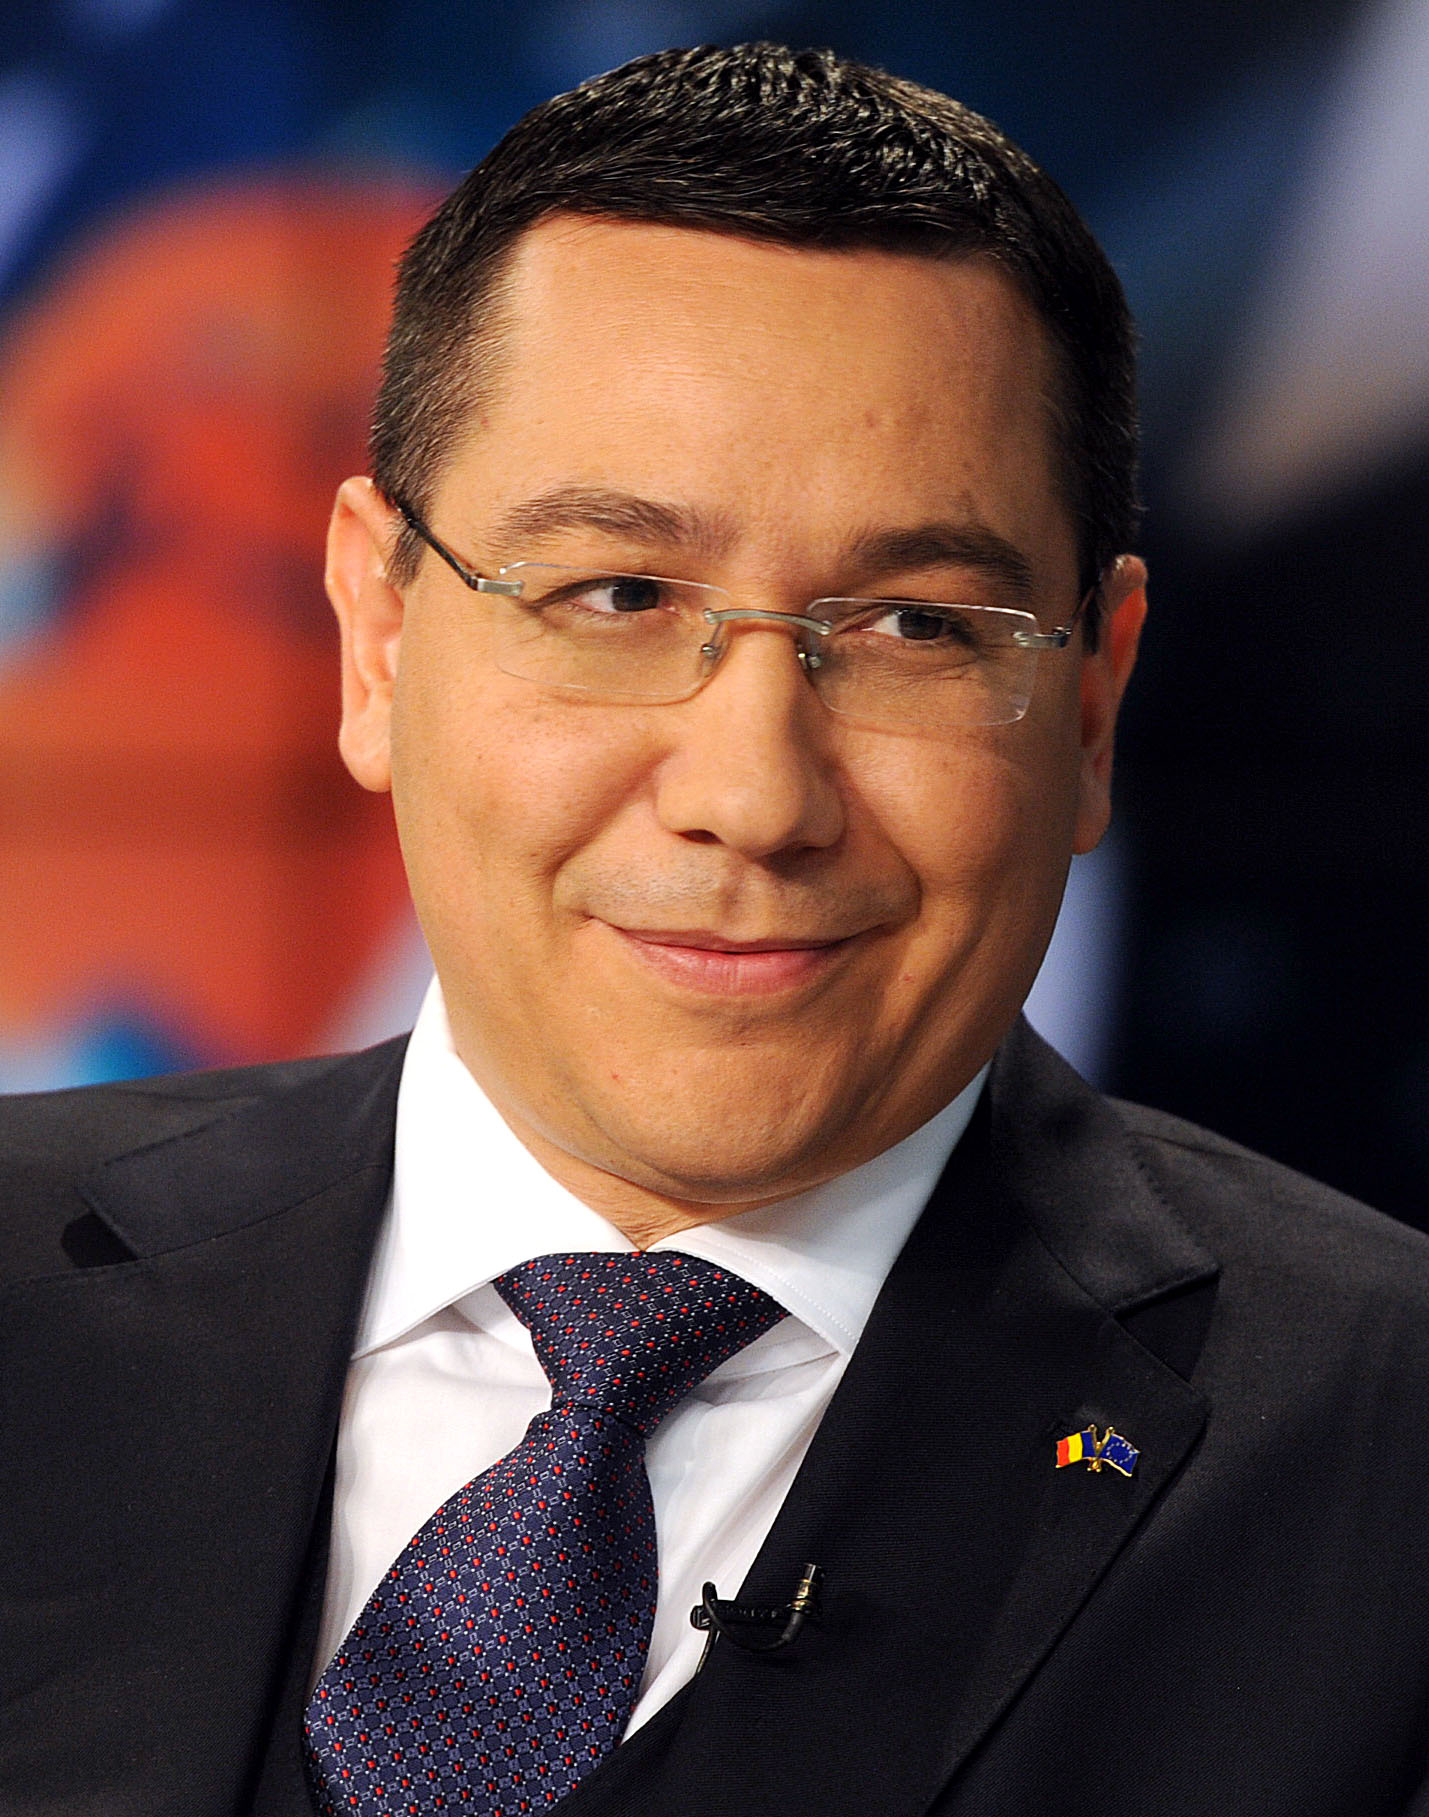 The 47-year old son of father (?) and mother(?) Victor Ponta in 2020 photo. Victor Ponta earned a million dollar salary - leaving the net worth at 10 million in 2020